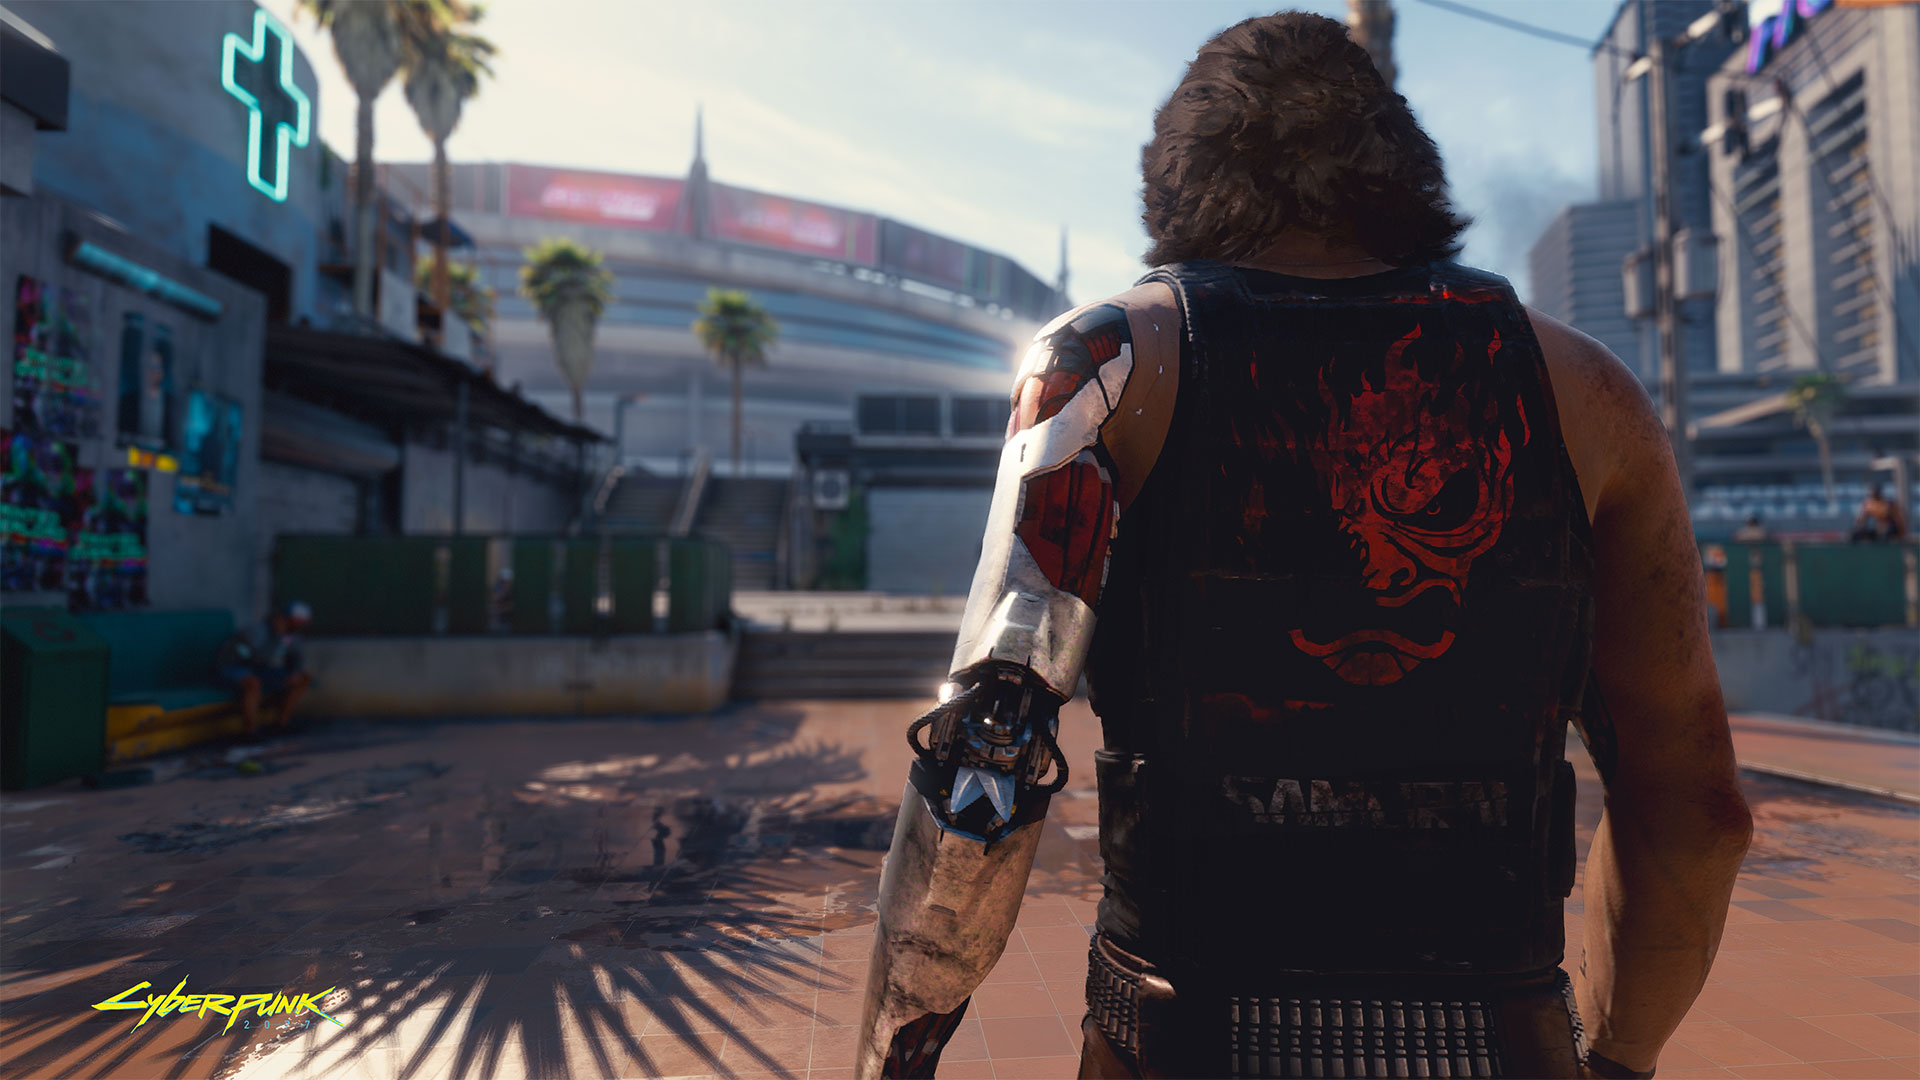 How to get a refund on Cyberpunk 2077 - CNN Underscored